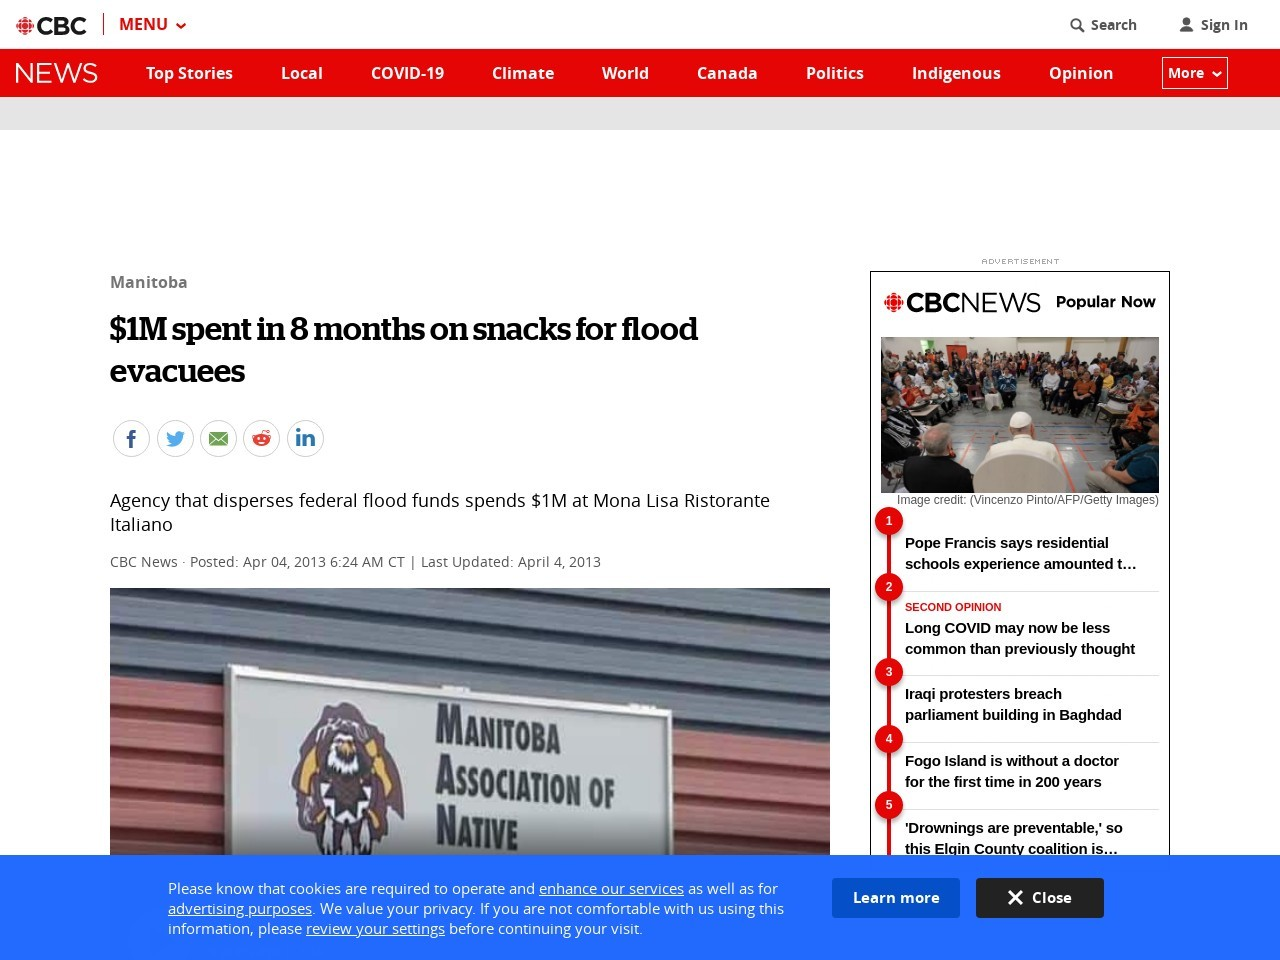 $1M spent in 8 months on snacks for flood evacuees